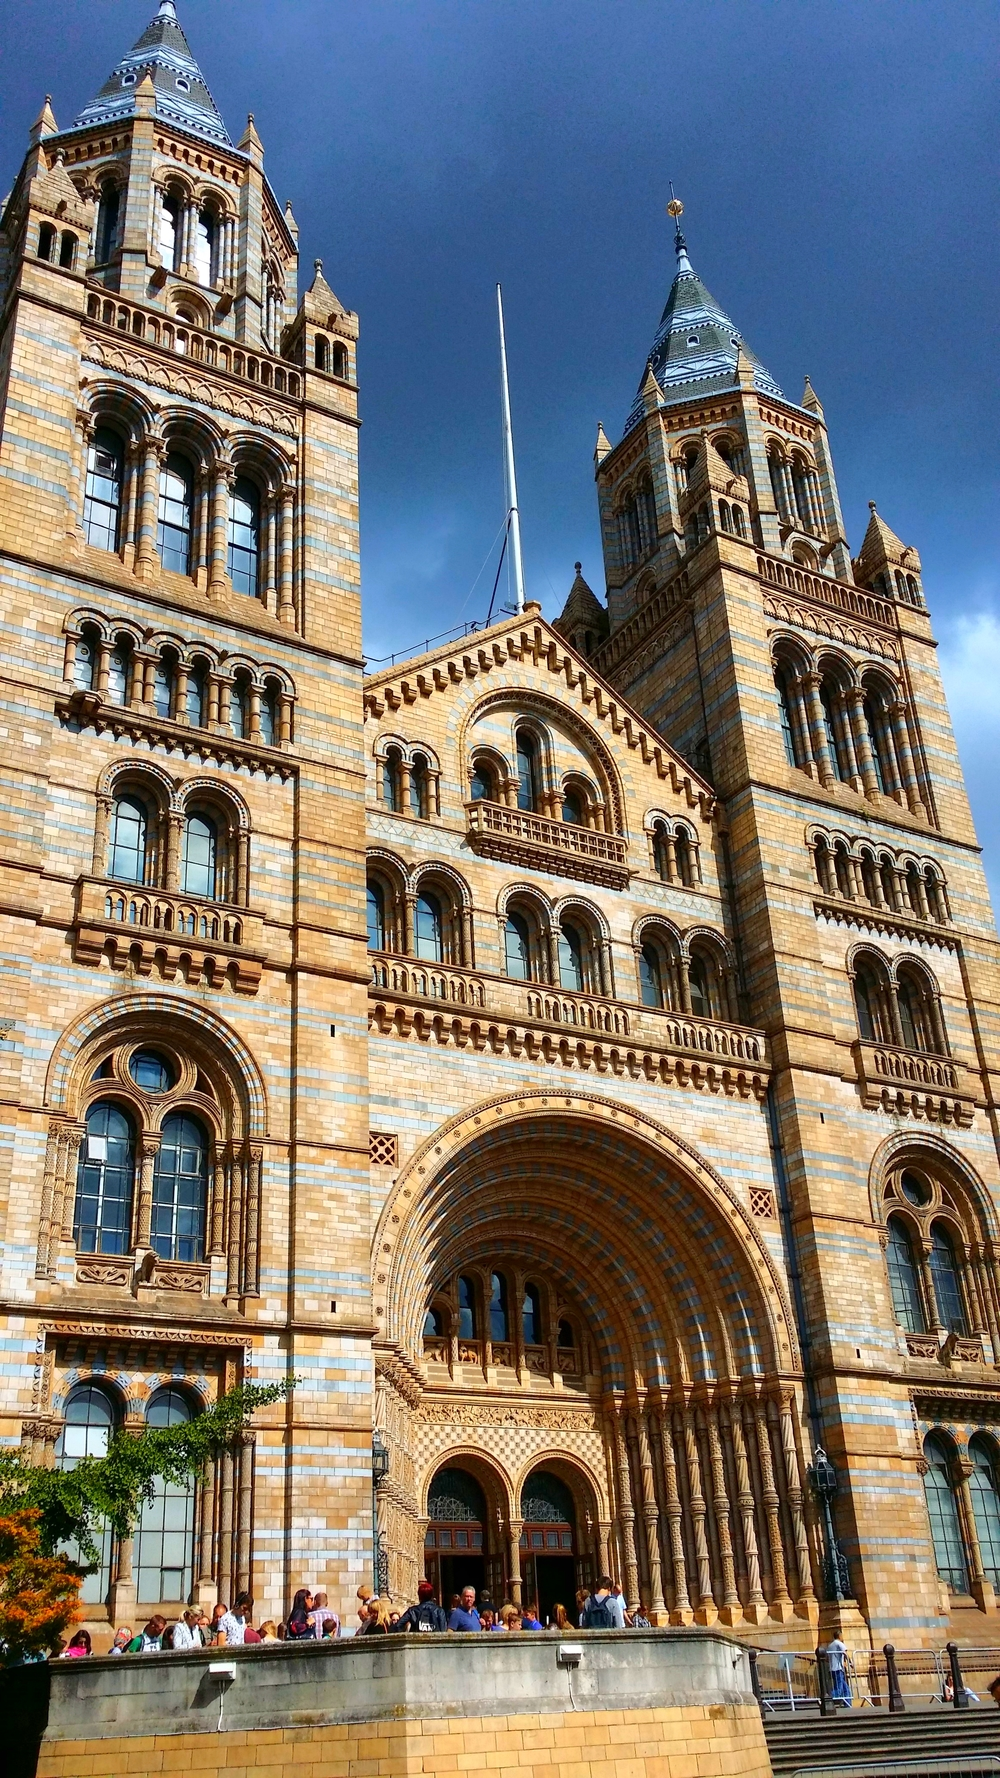 The Natural History Museum, Kensington